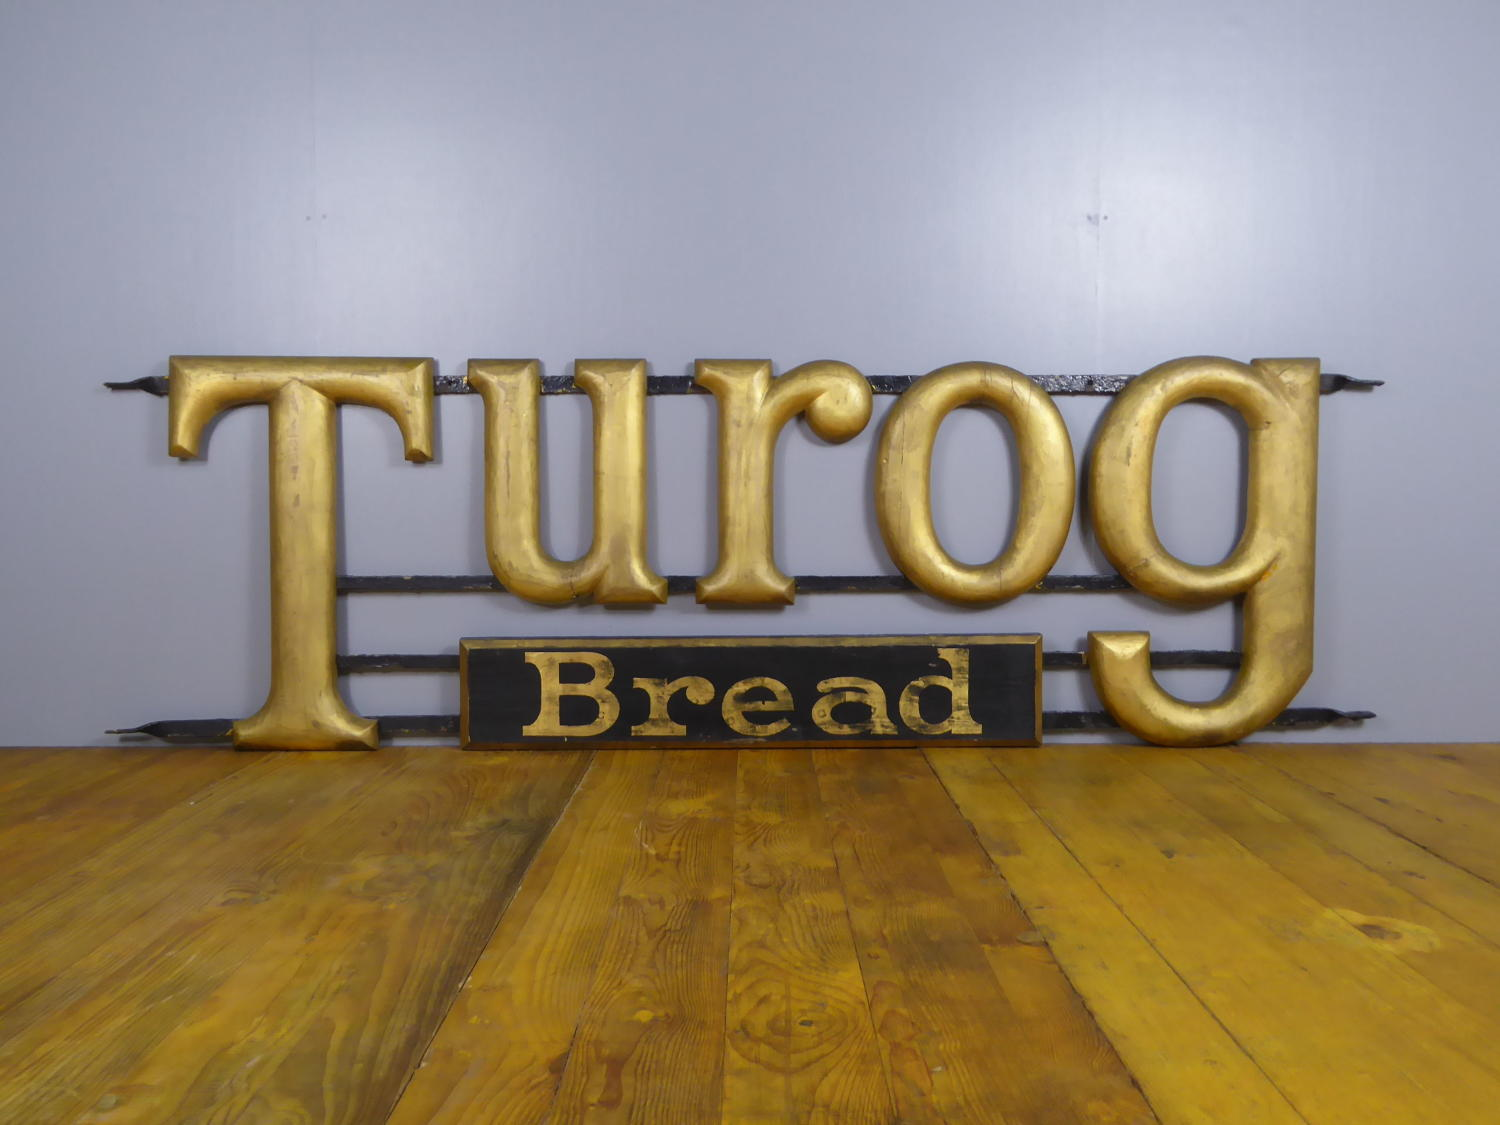 Huge Turog Bread Sign